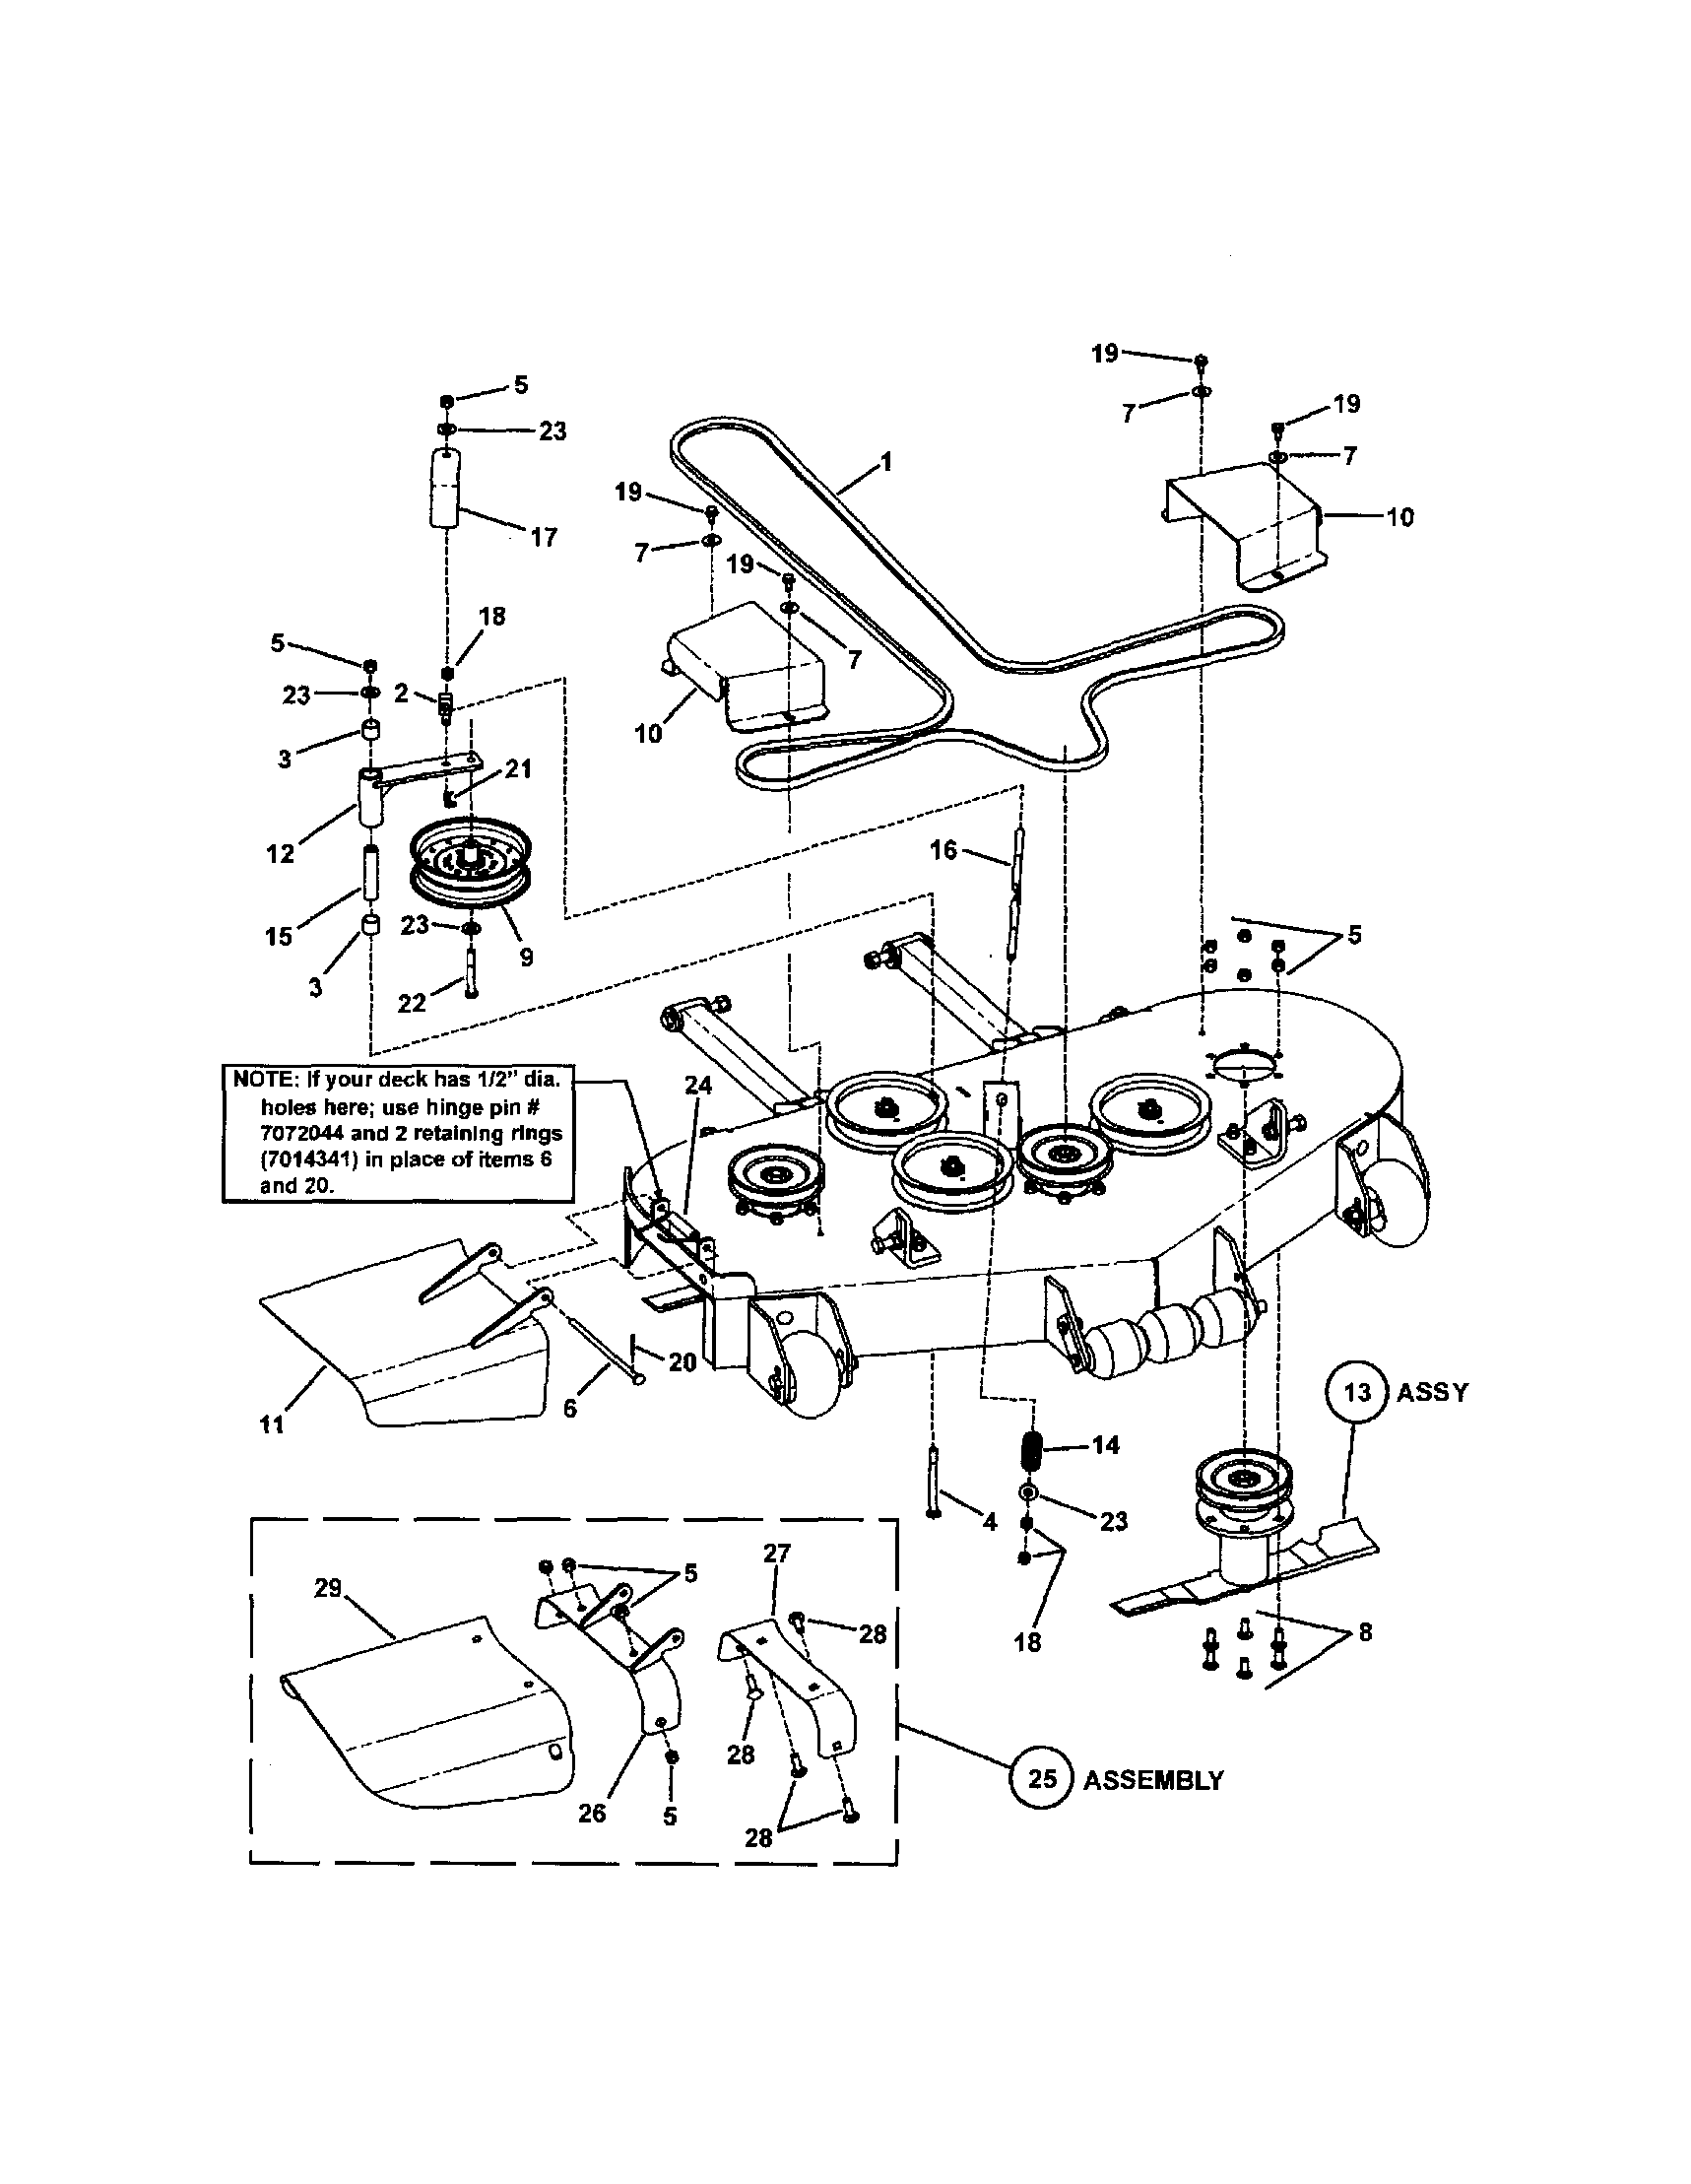 zero turn mower drawing at getdrawings com free for scag mower wiring diagram